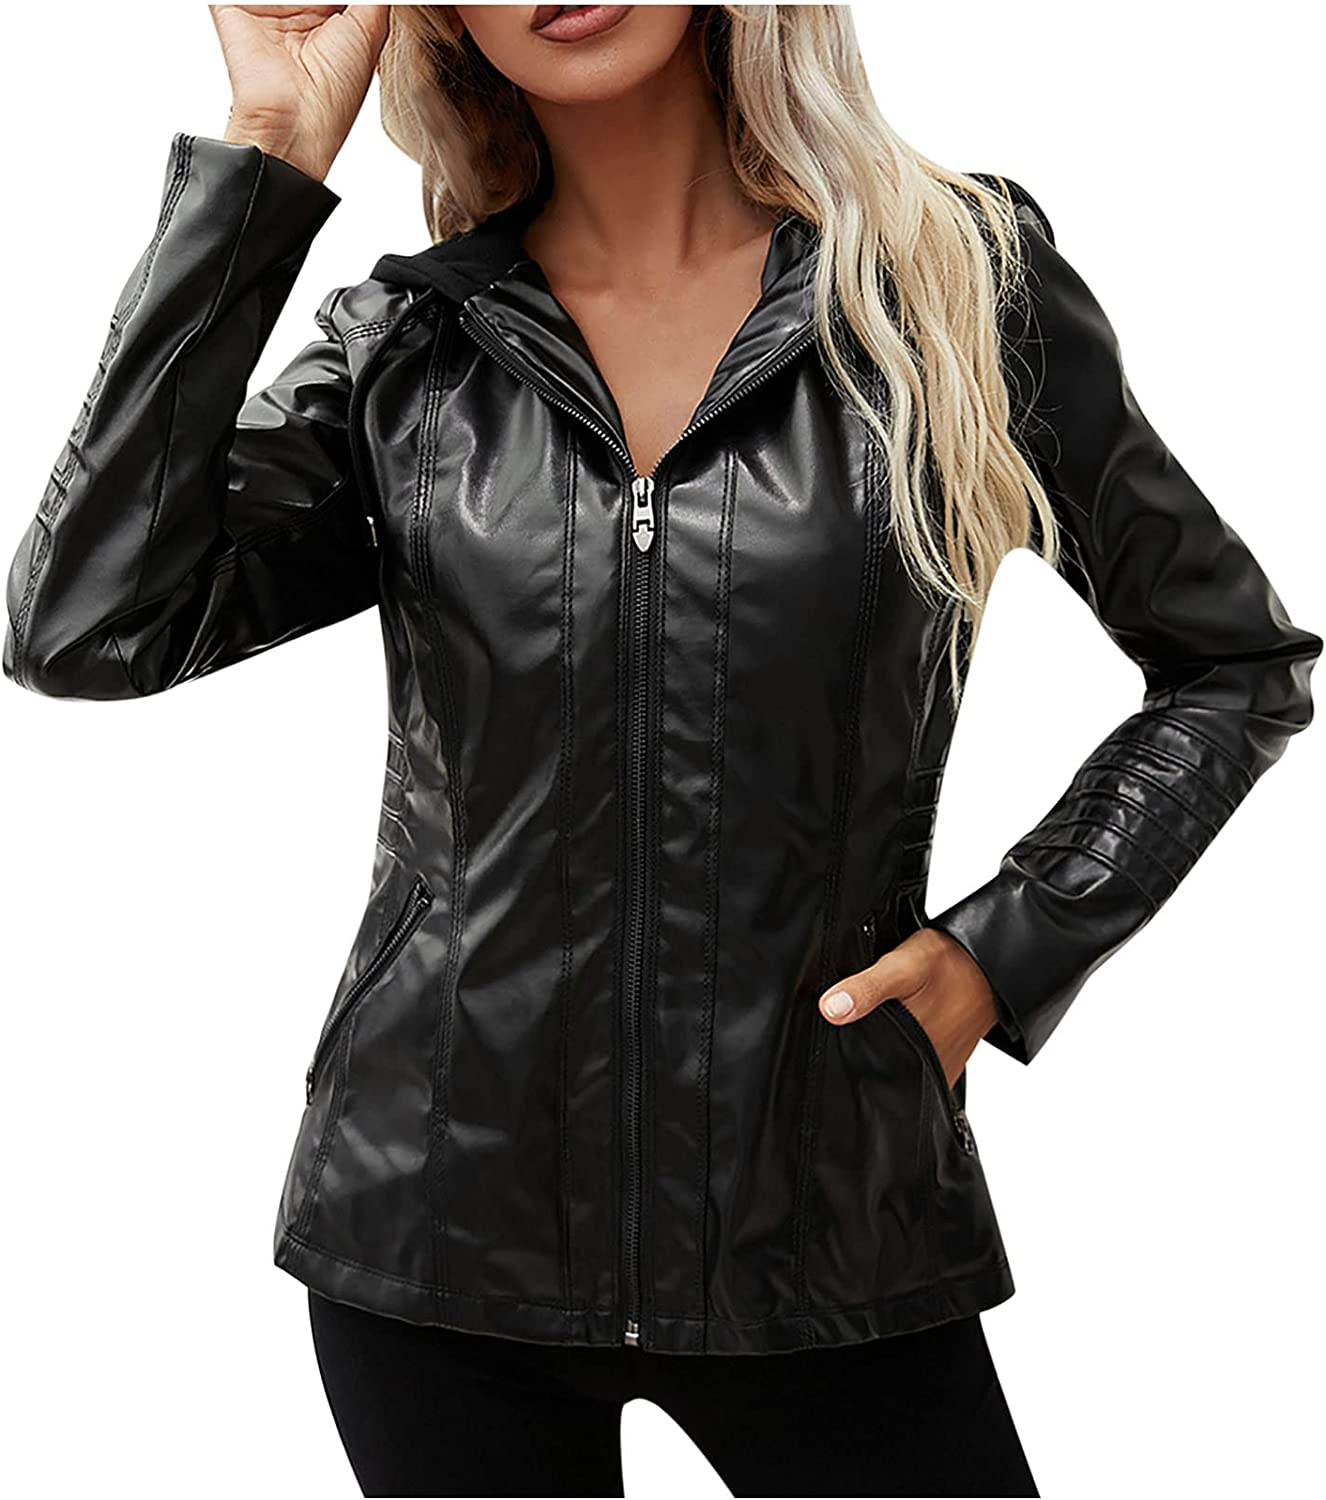 Women's PU Large special price !! Max 50% OFF Leather Jacket Stylish Pockets Hooded Zipper Out